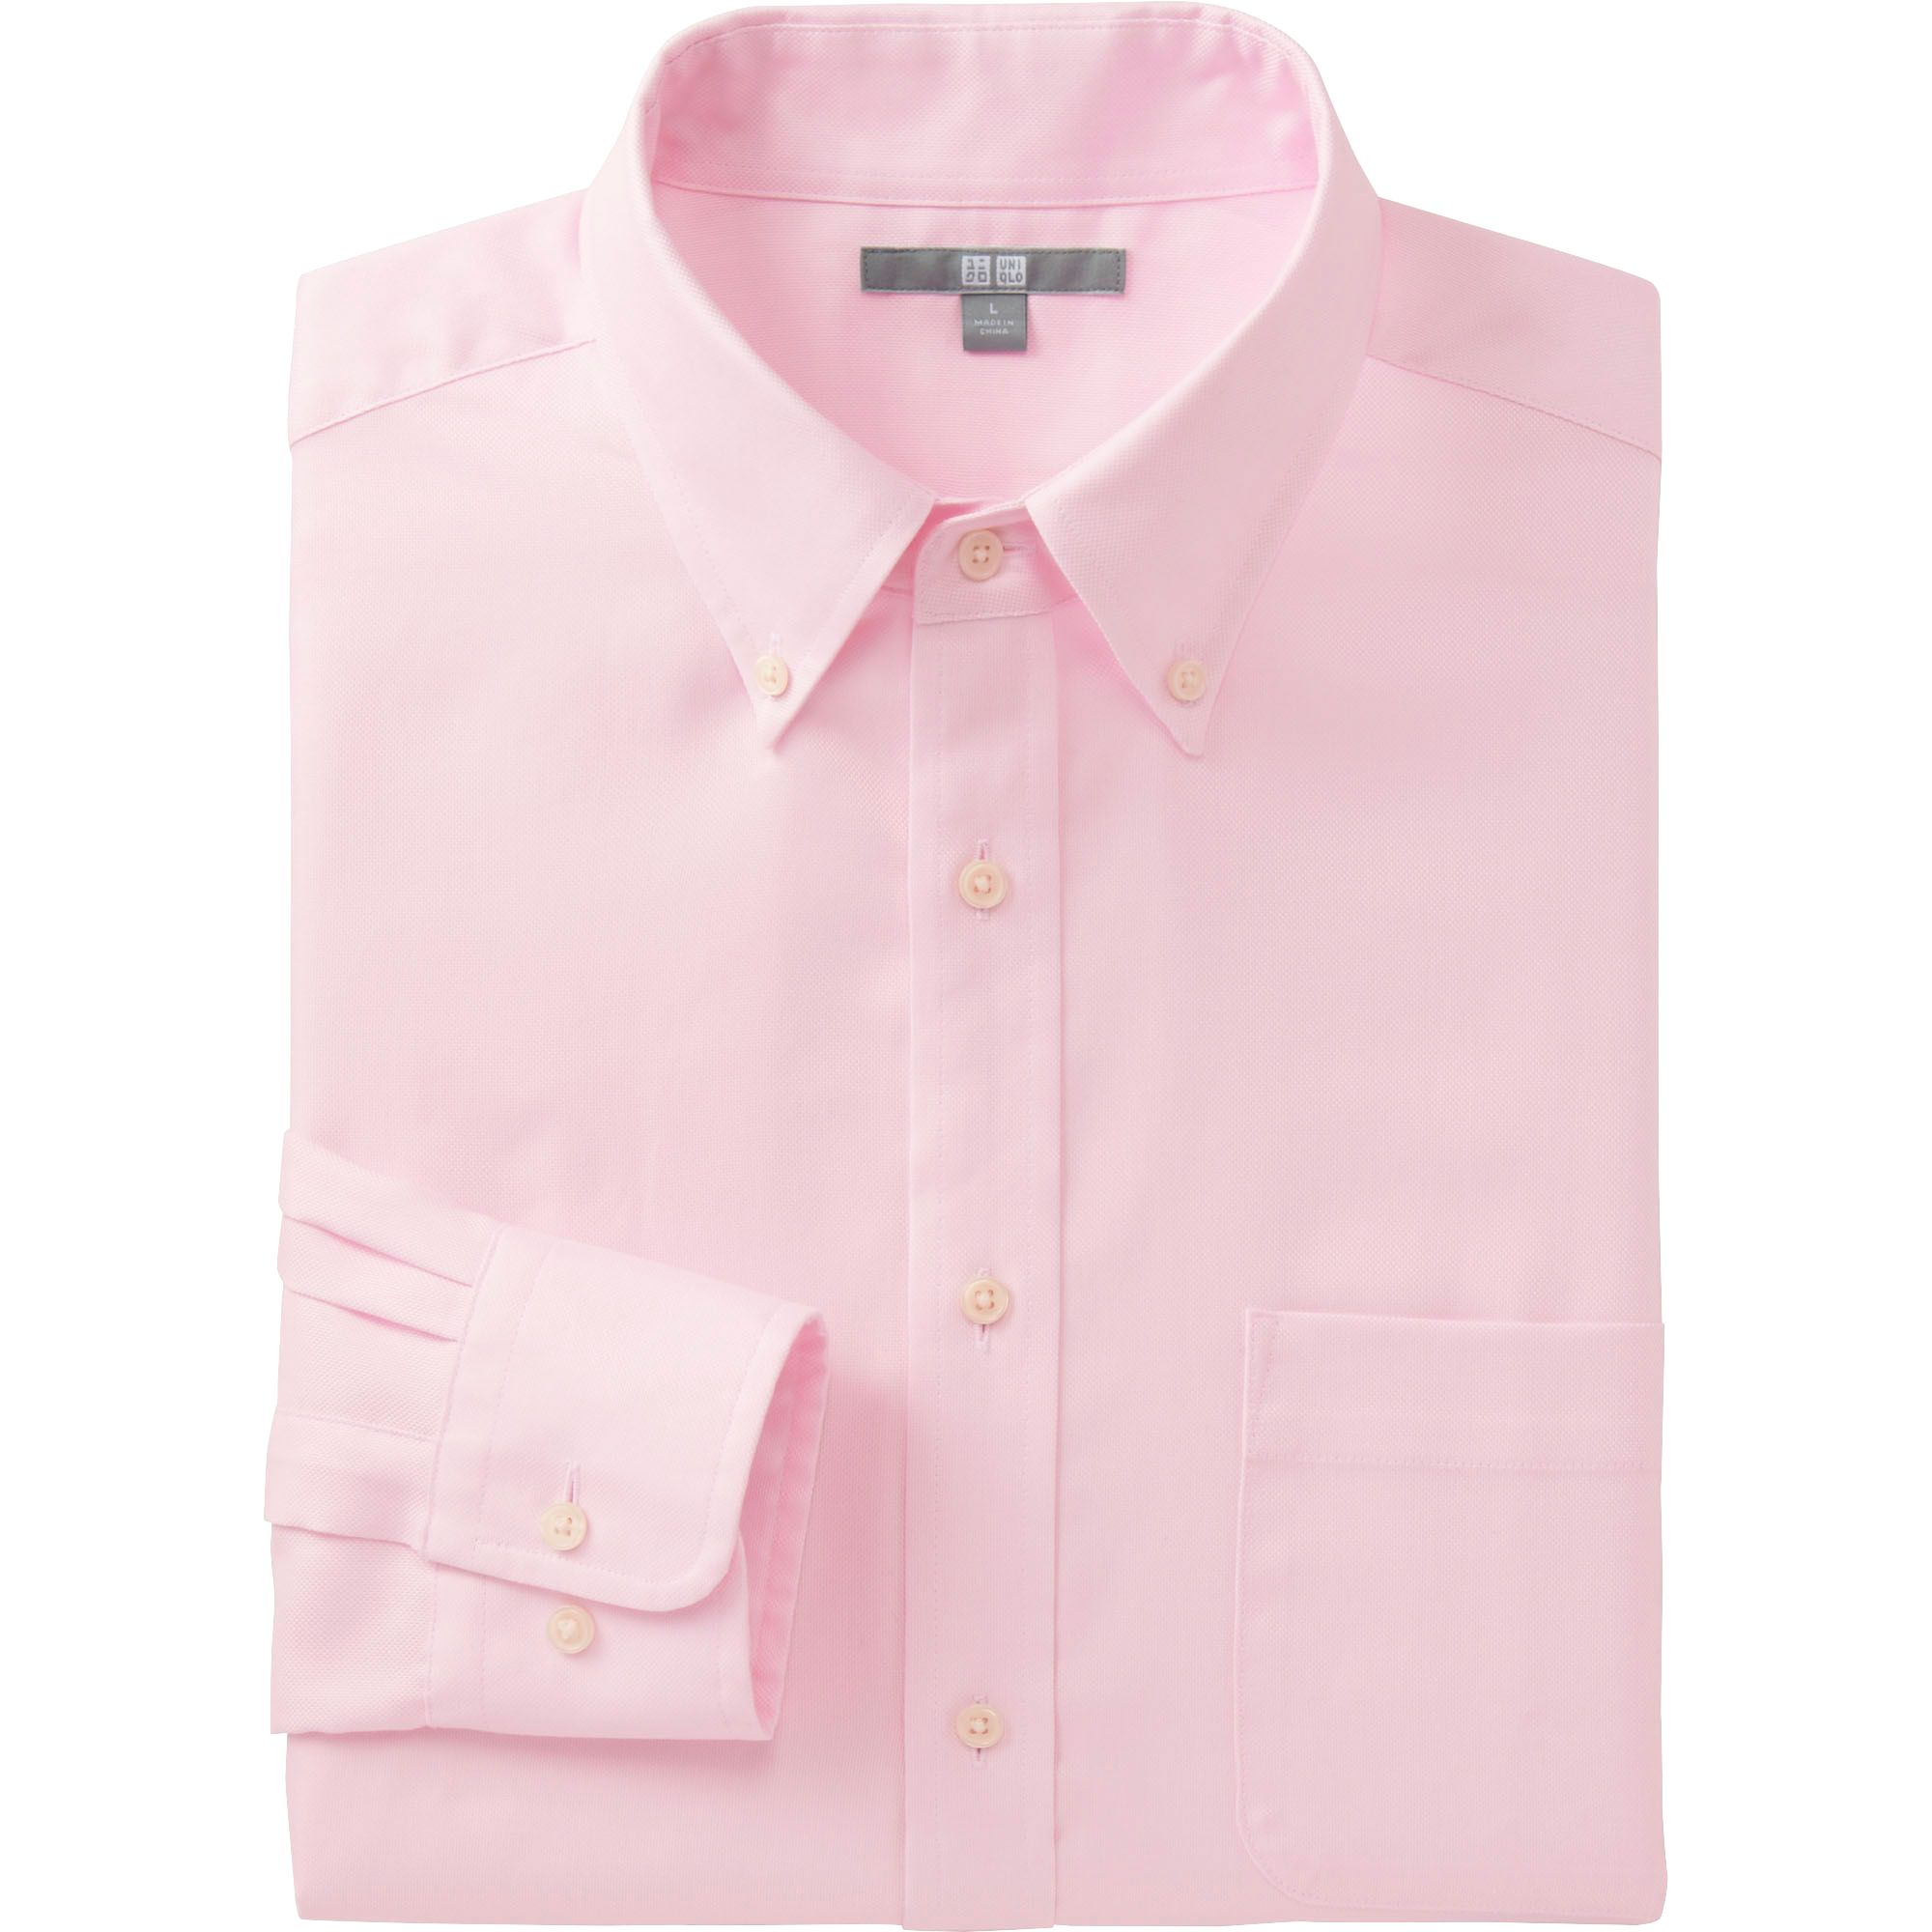 Uniqlo men easy care oxford long sleeve shirt in pink for for Pink oxford shirt men